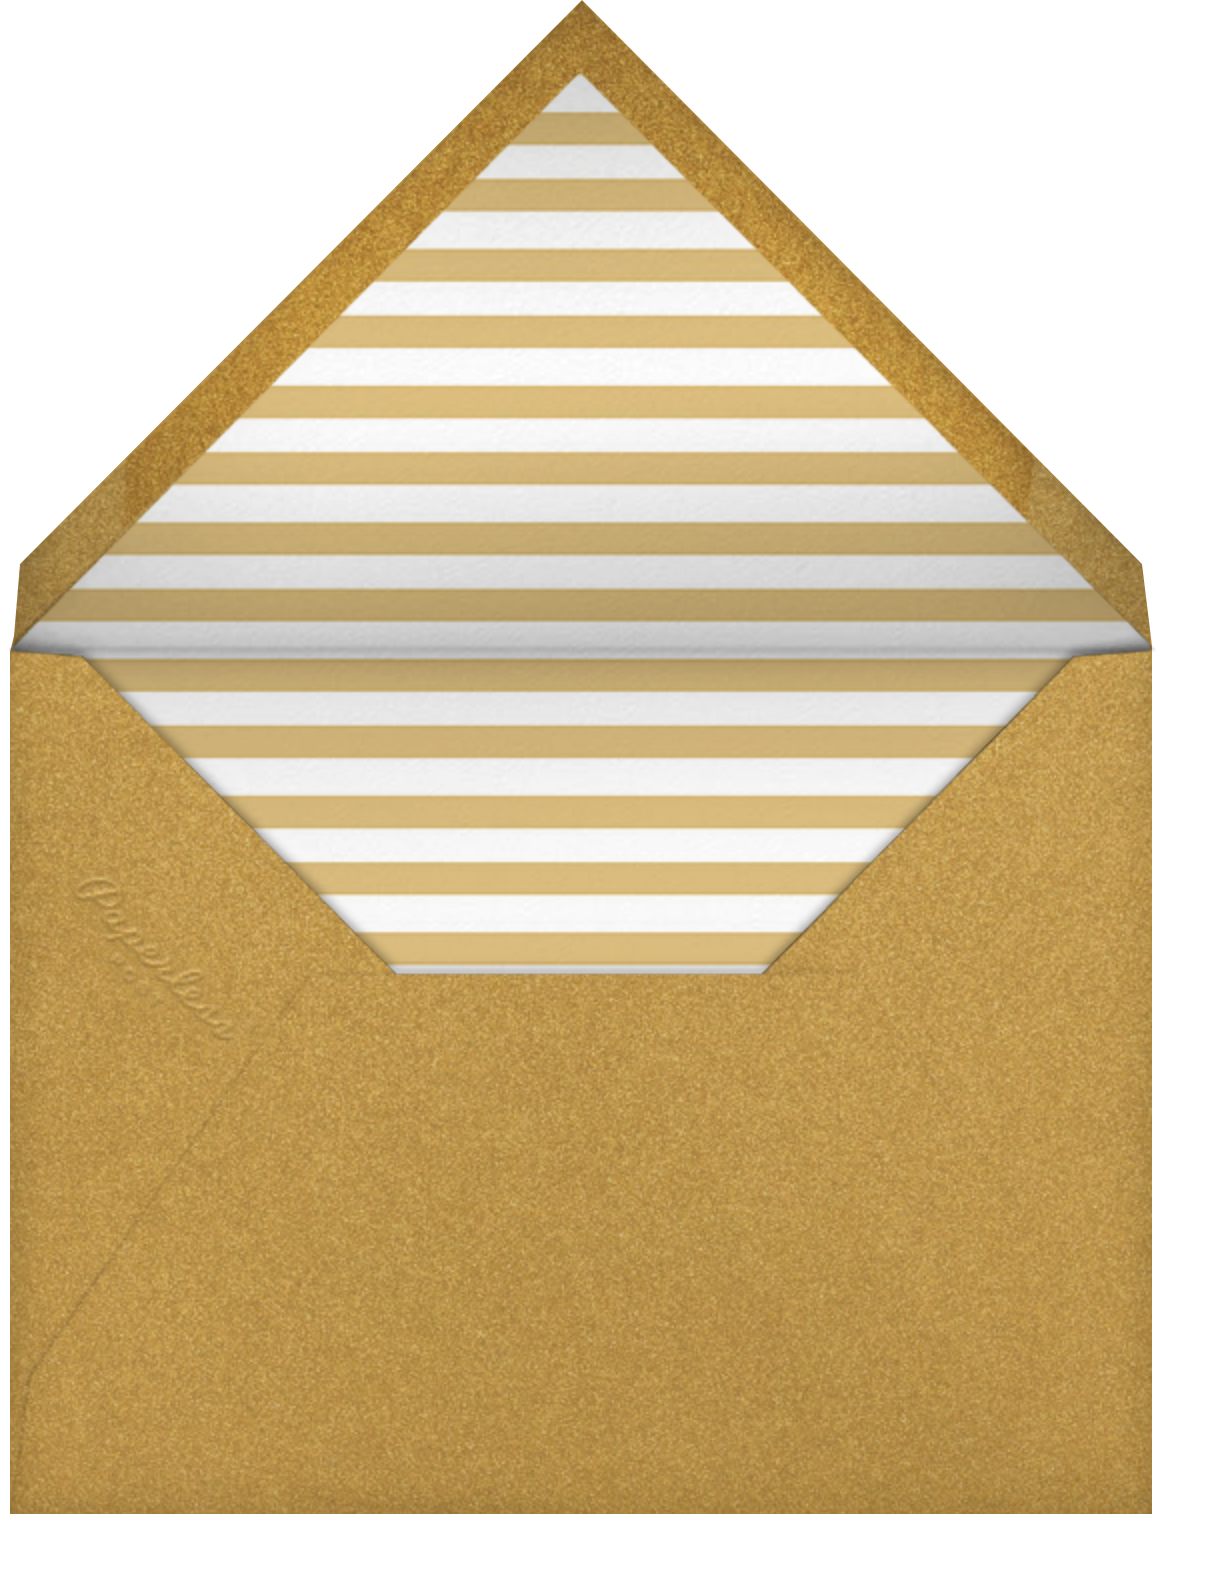 Smash Cut (Invitation) - Paperless Post - All - envelope back